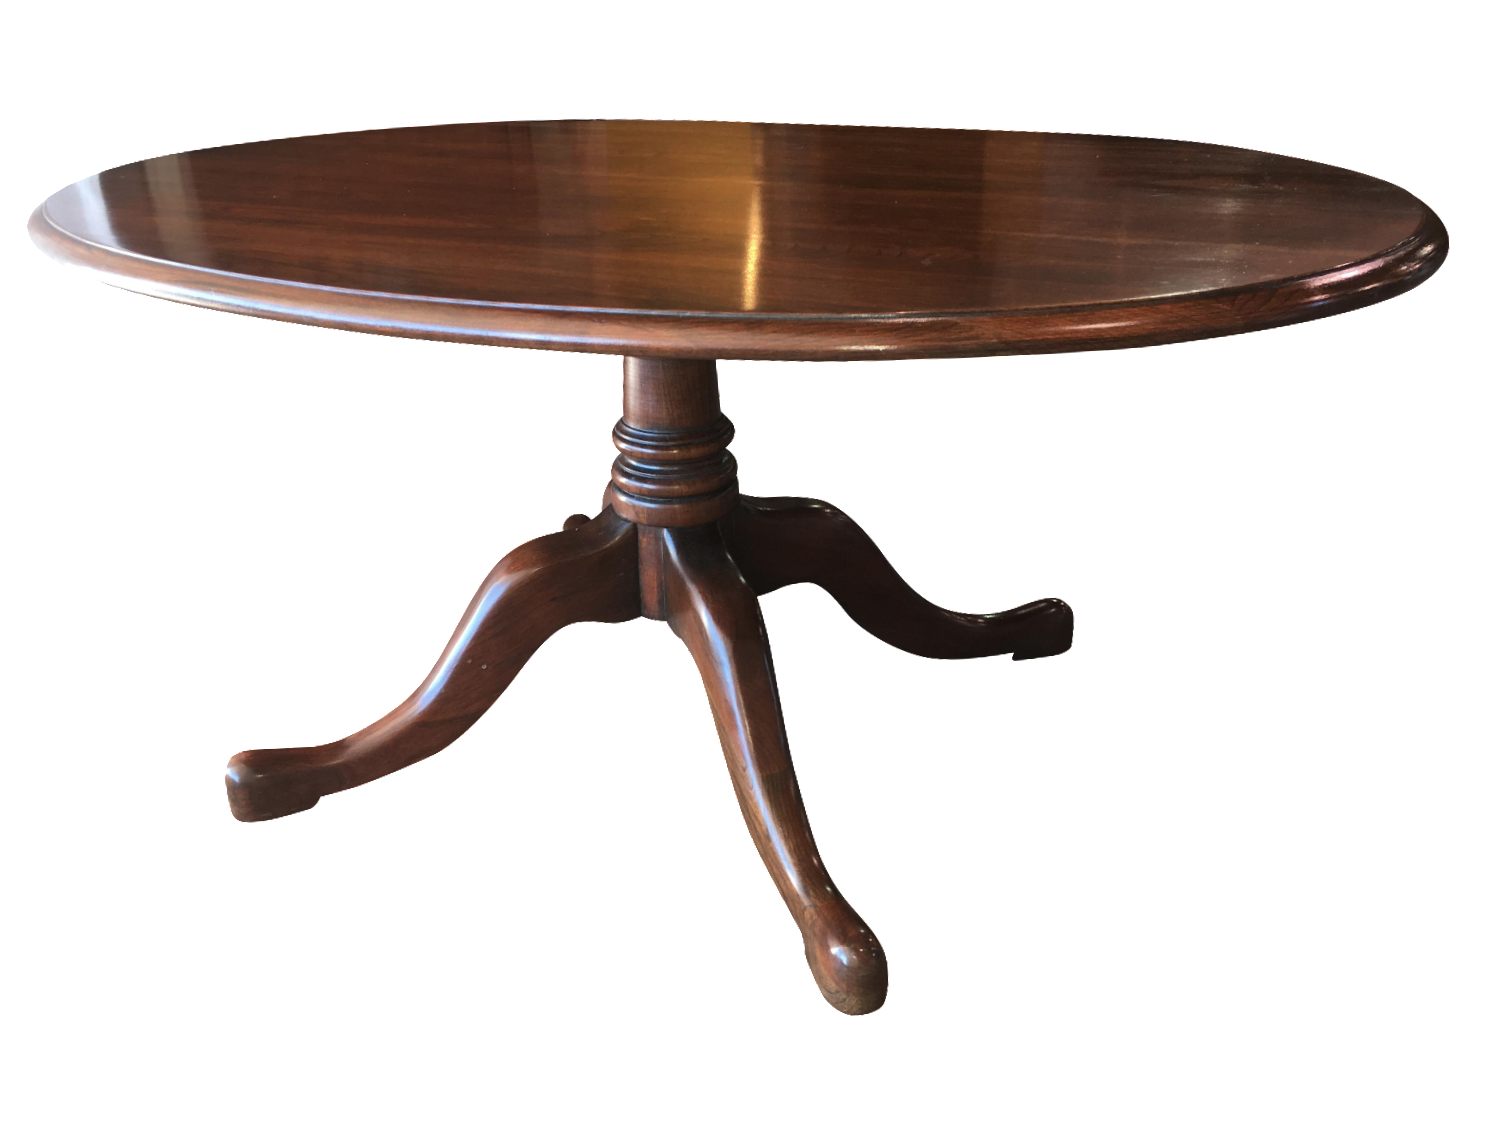 Pennsylvania House Oval Coffee Table Chairish Rh Com Dining Room Cherry Furniture